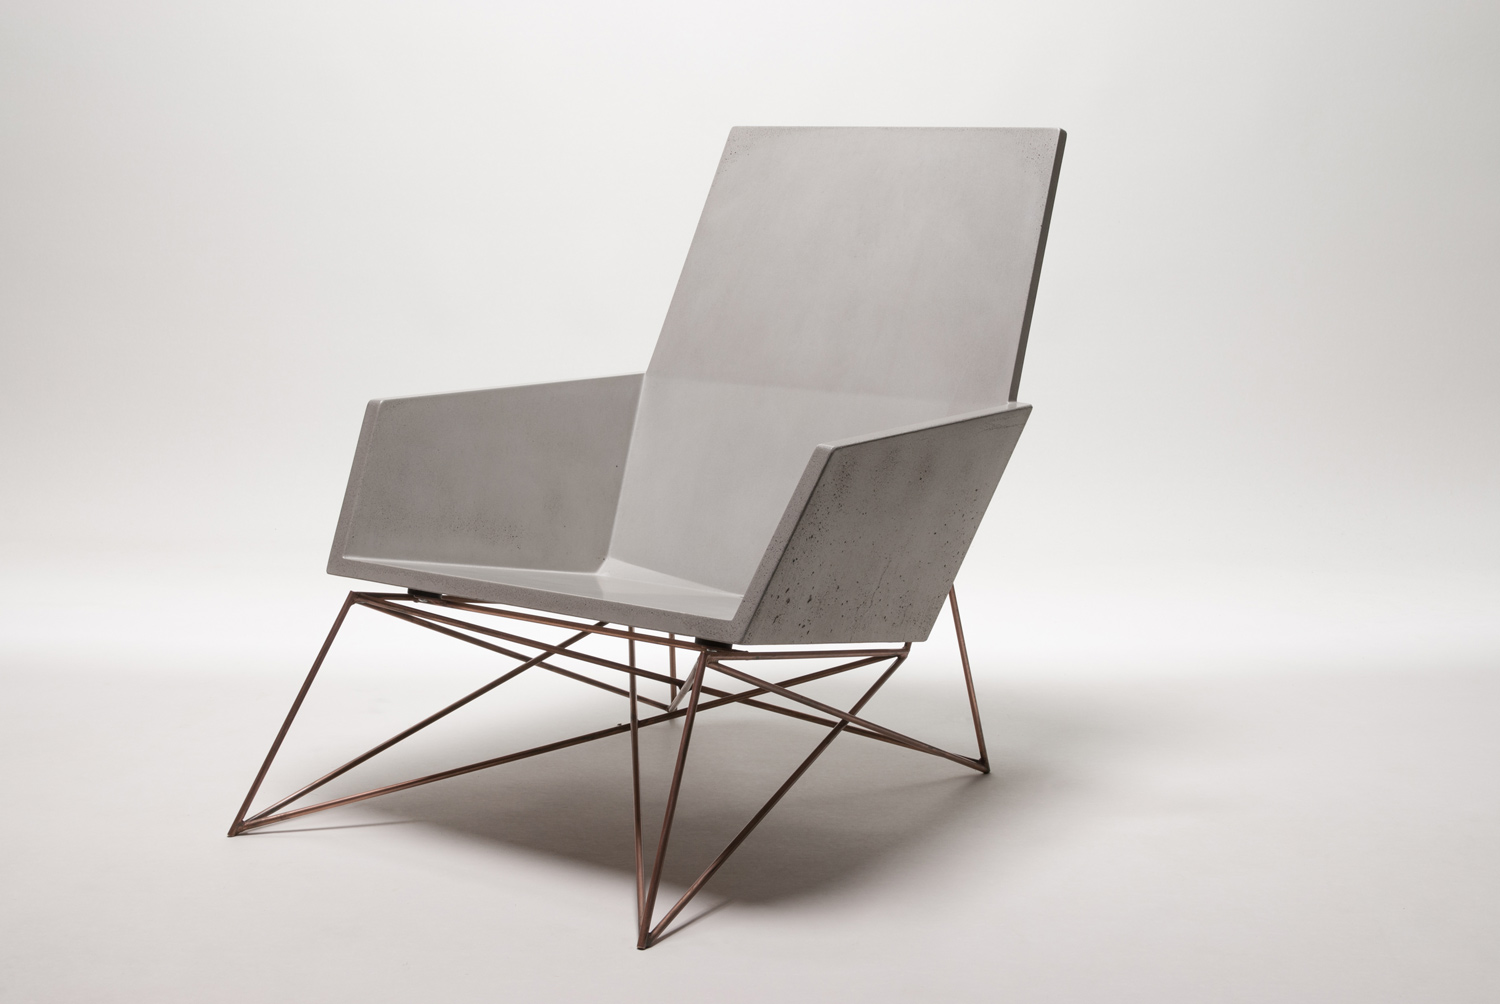 A modern concrete + copper concrete chair for indoor and outdoor applications